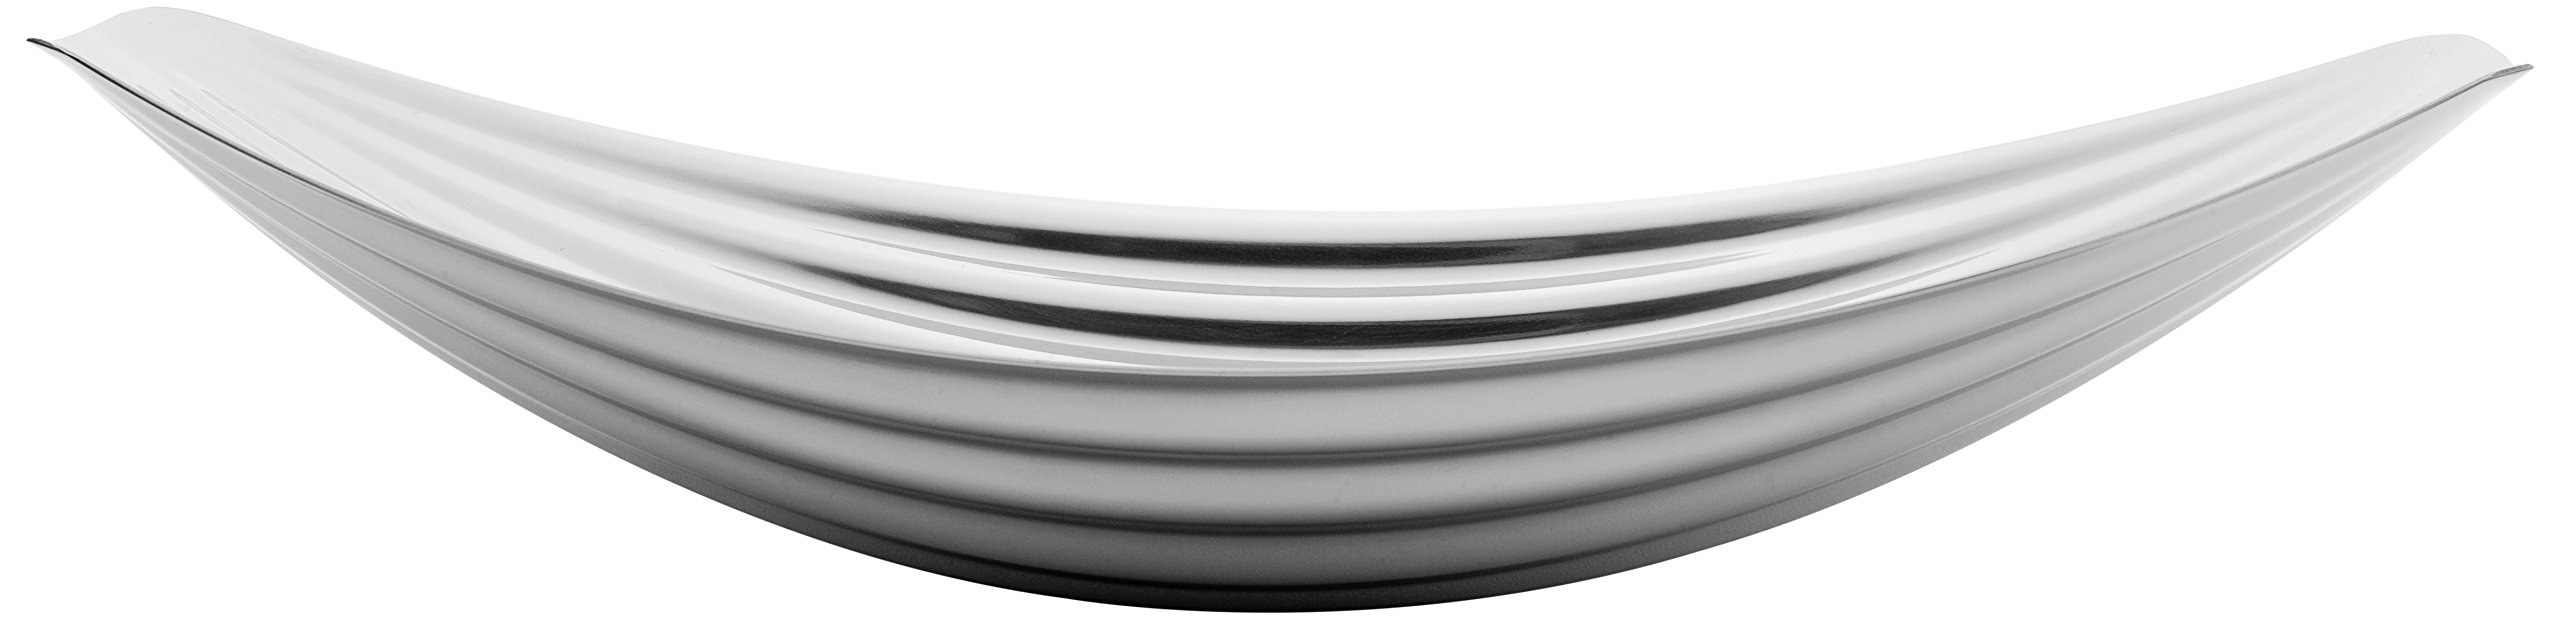 Toast Living USA Origami-Stainless Steel Plate, Silver